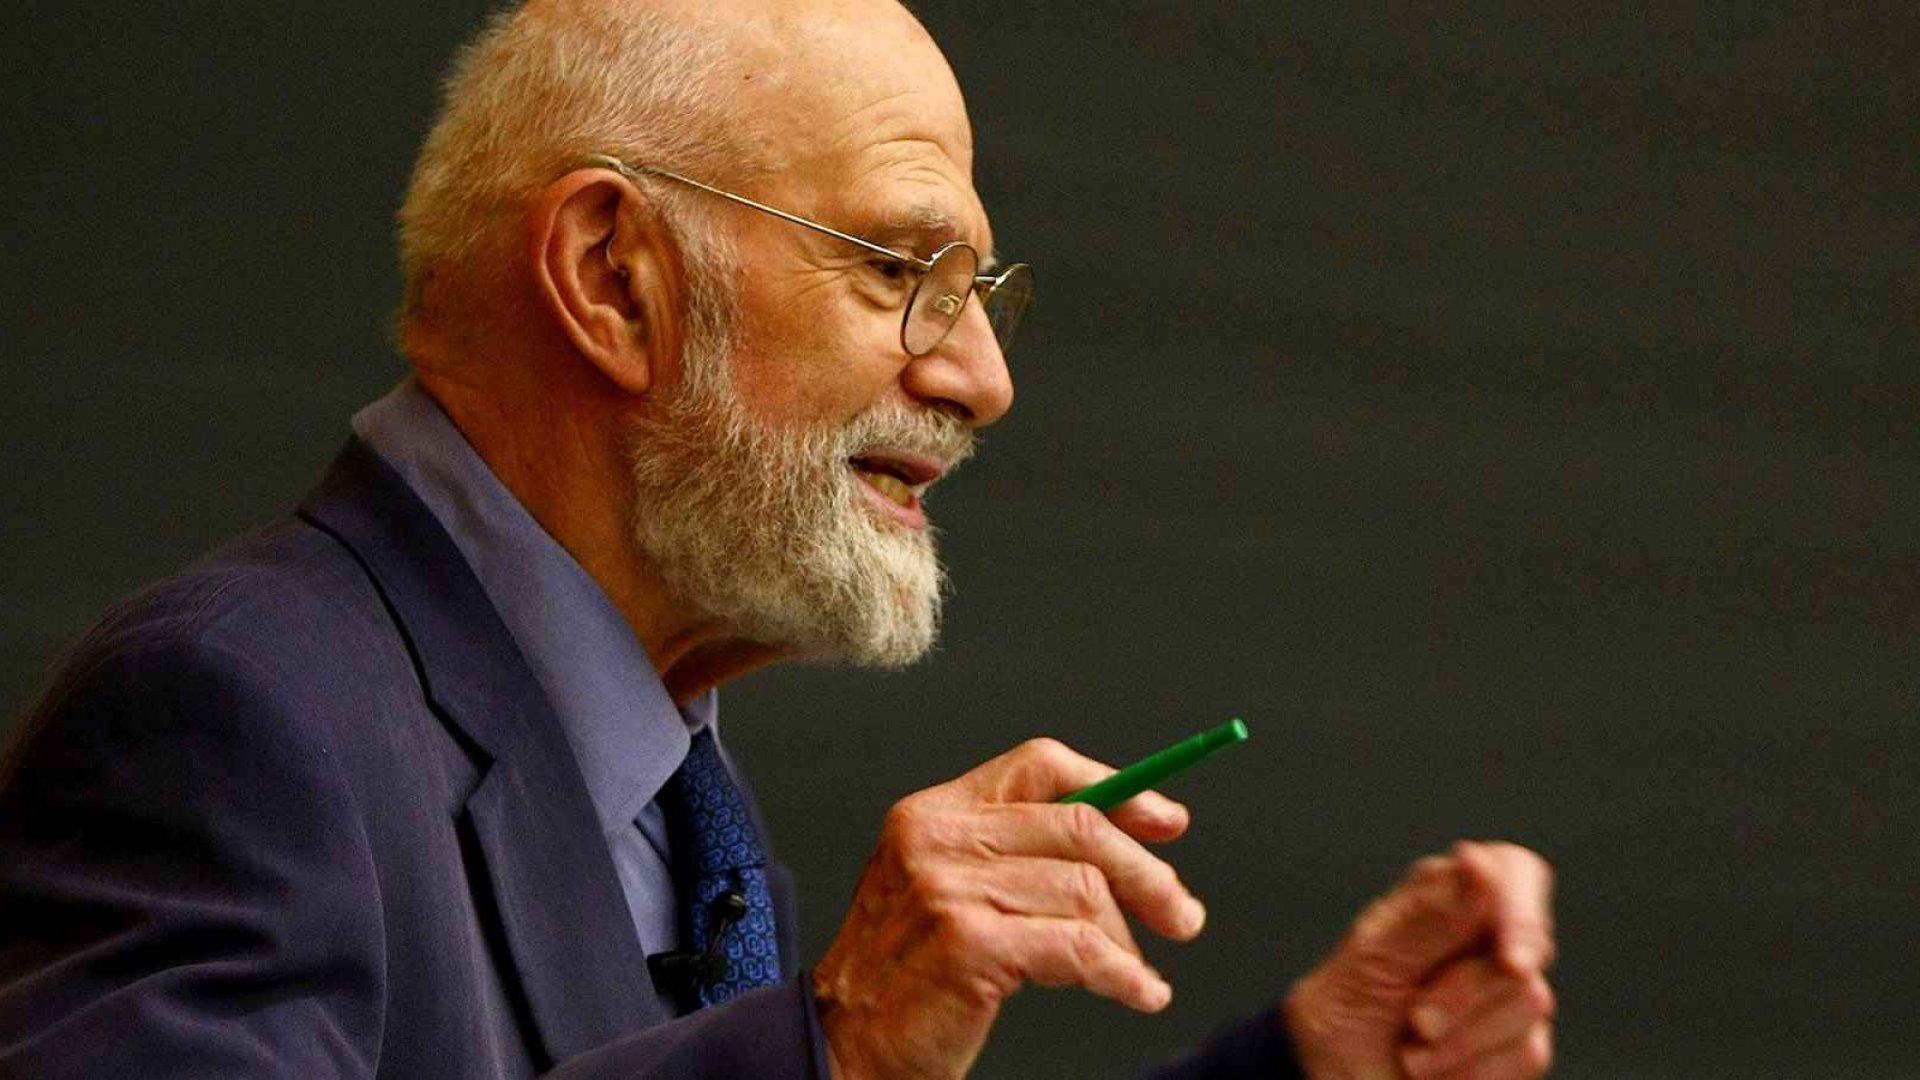 Want to Lead an Exceptional Life? 7 Powerful Lessons From the Late Oliver Sacks